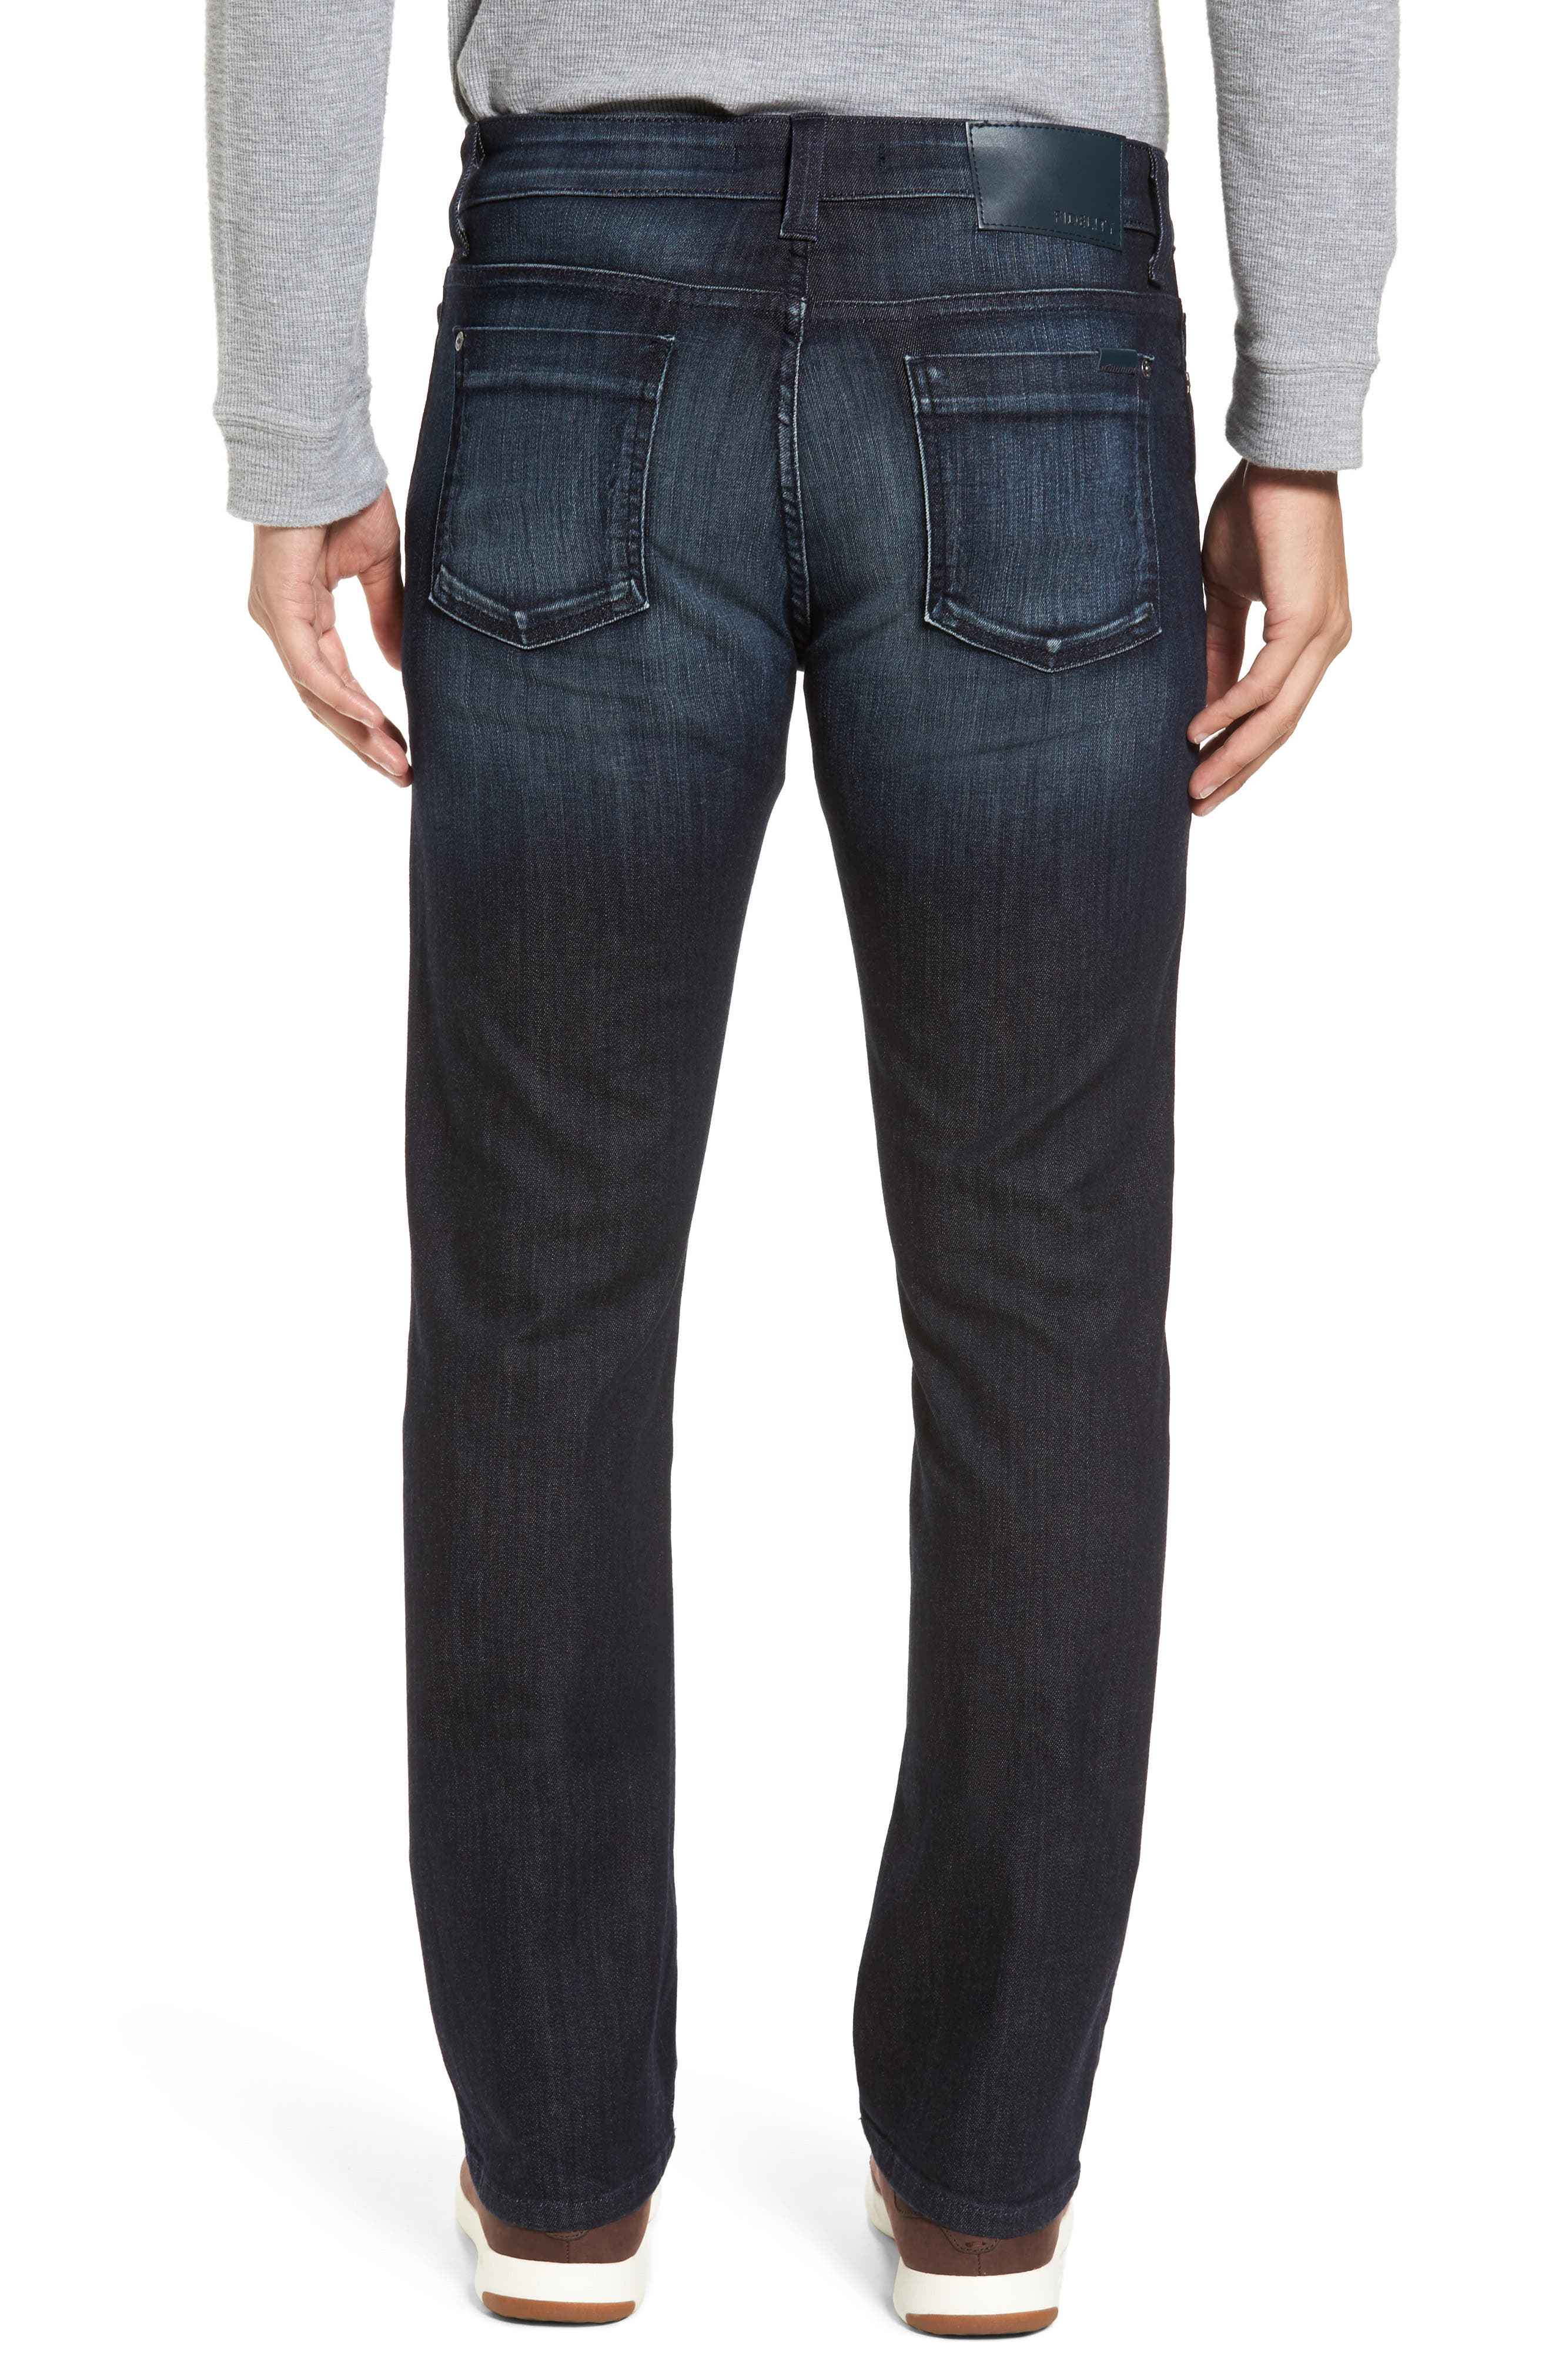 Alternate Image 2  - Fidelity Denim 5011 Relaxed Fit Jeans (Brooklyn Blue)